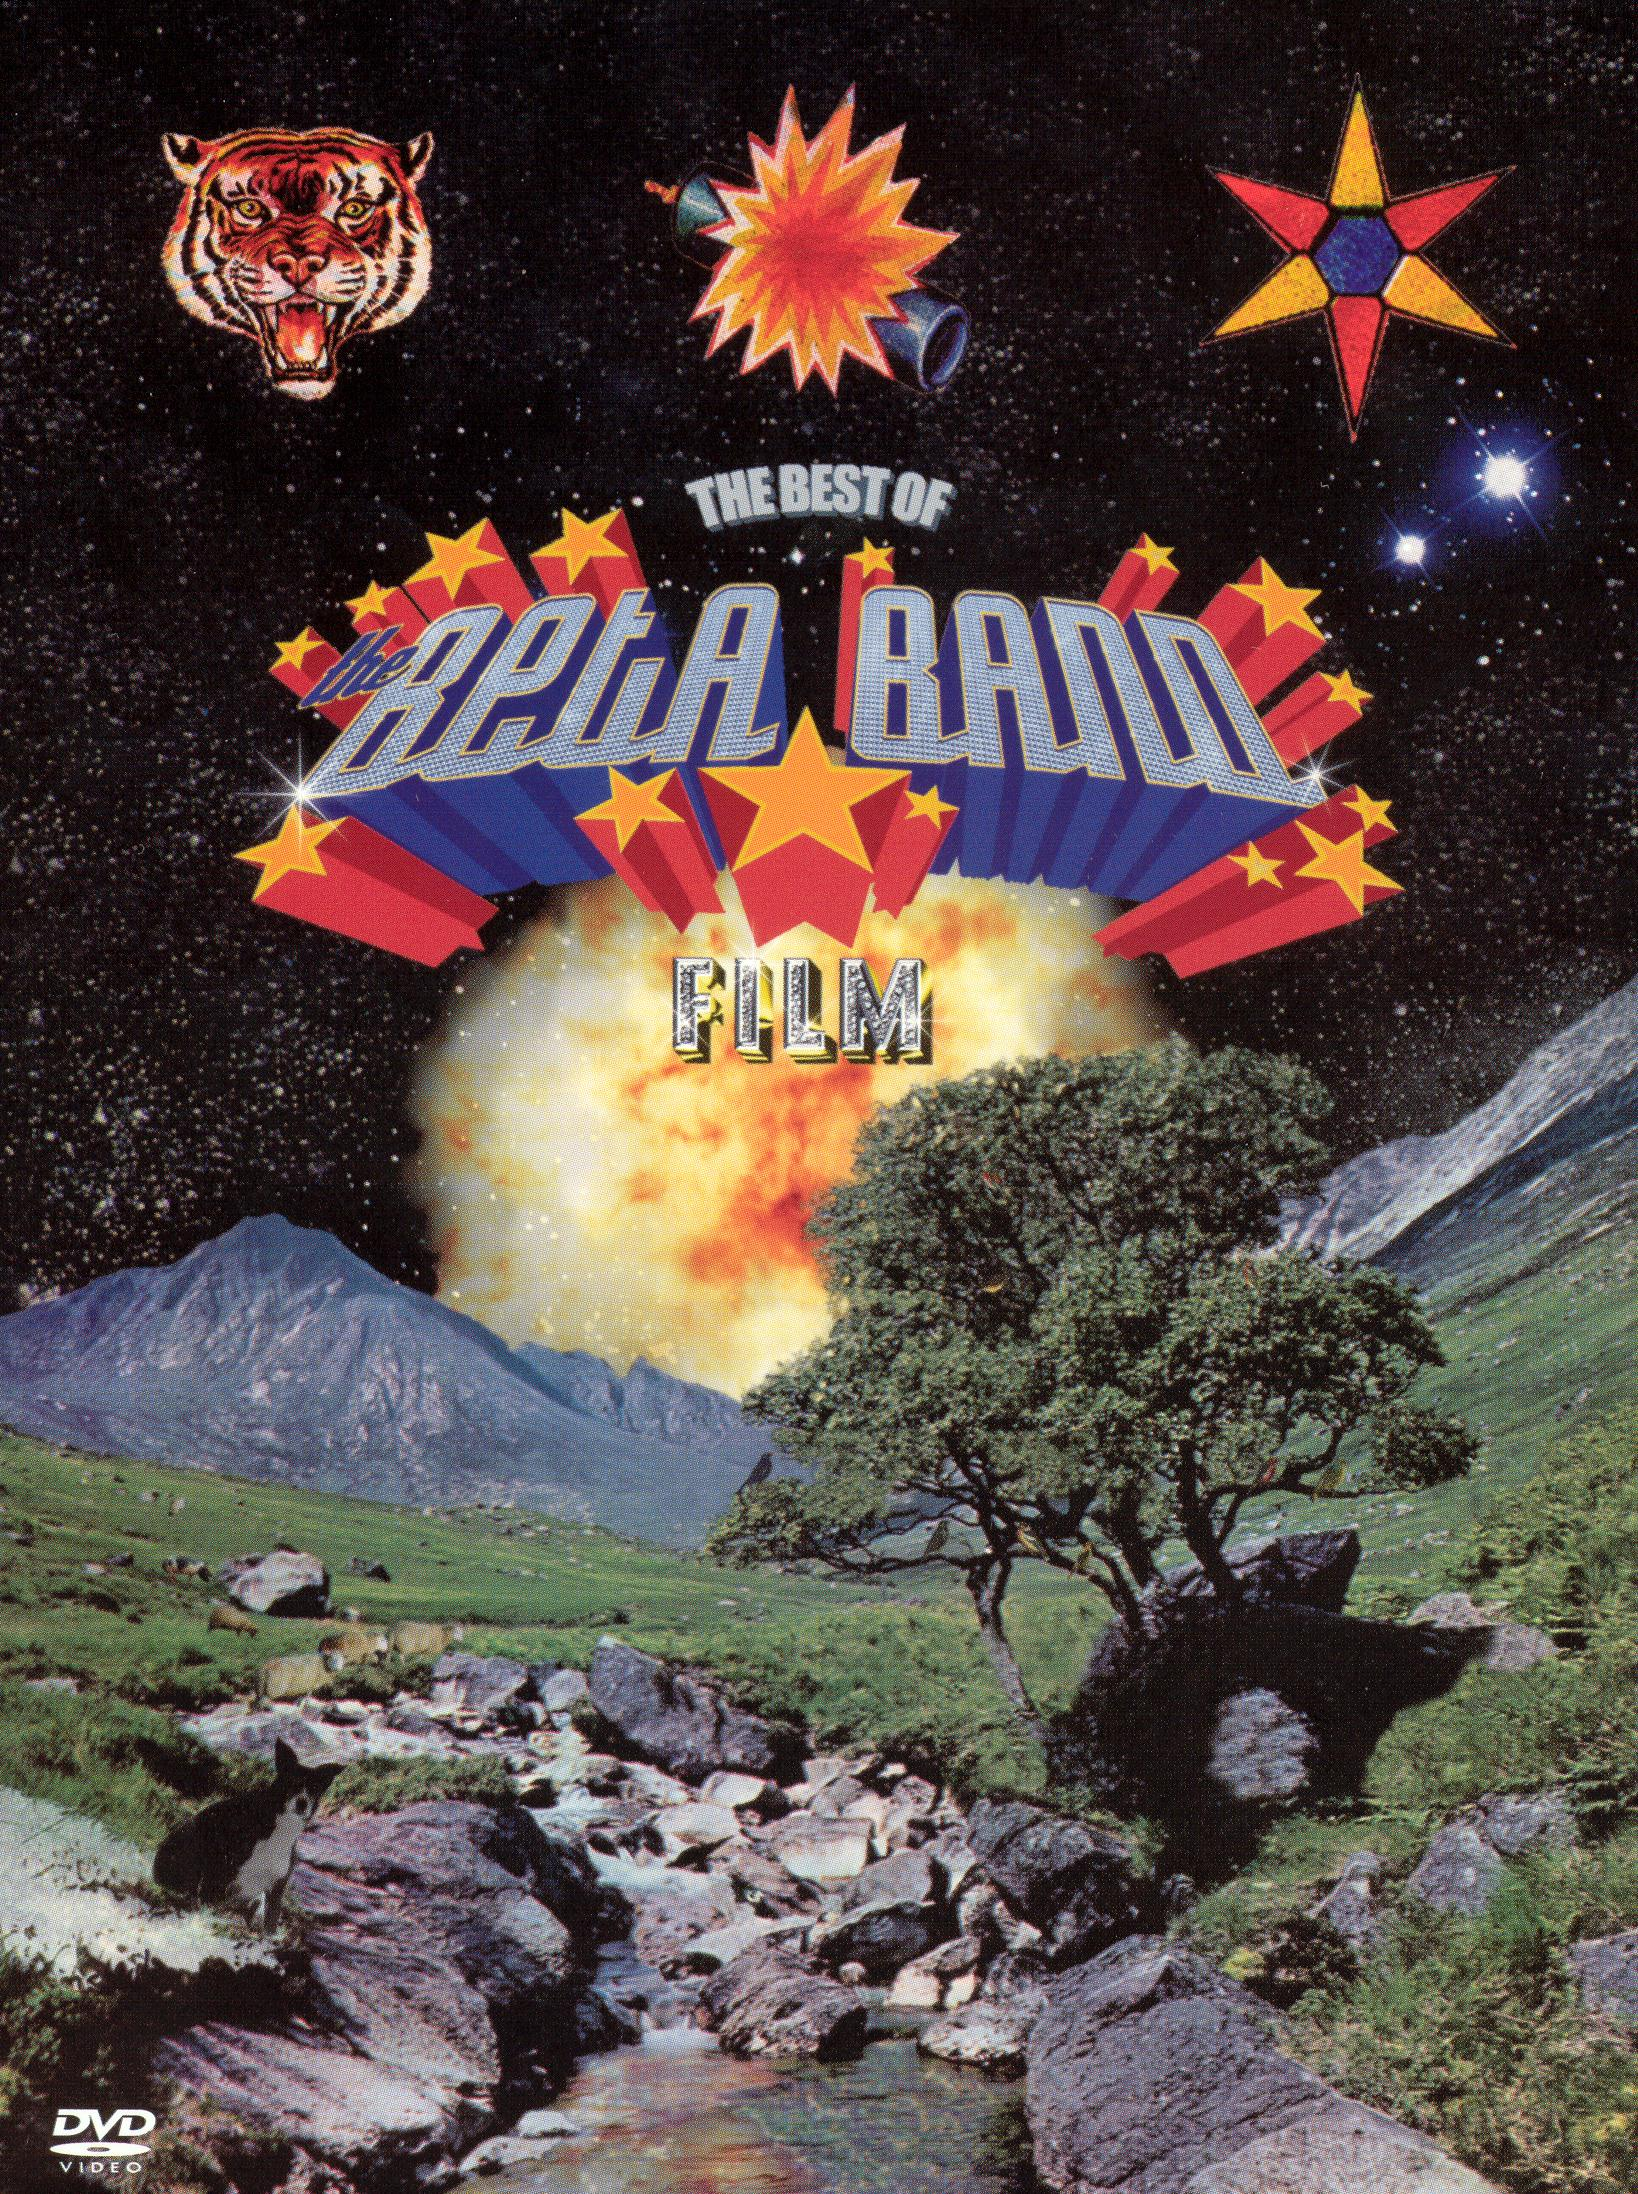 Beta Band: The Best of the Beta Band